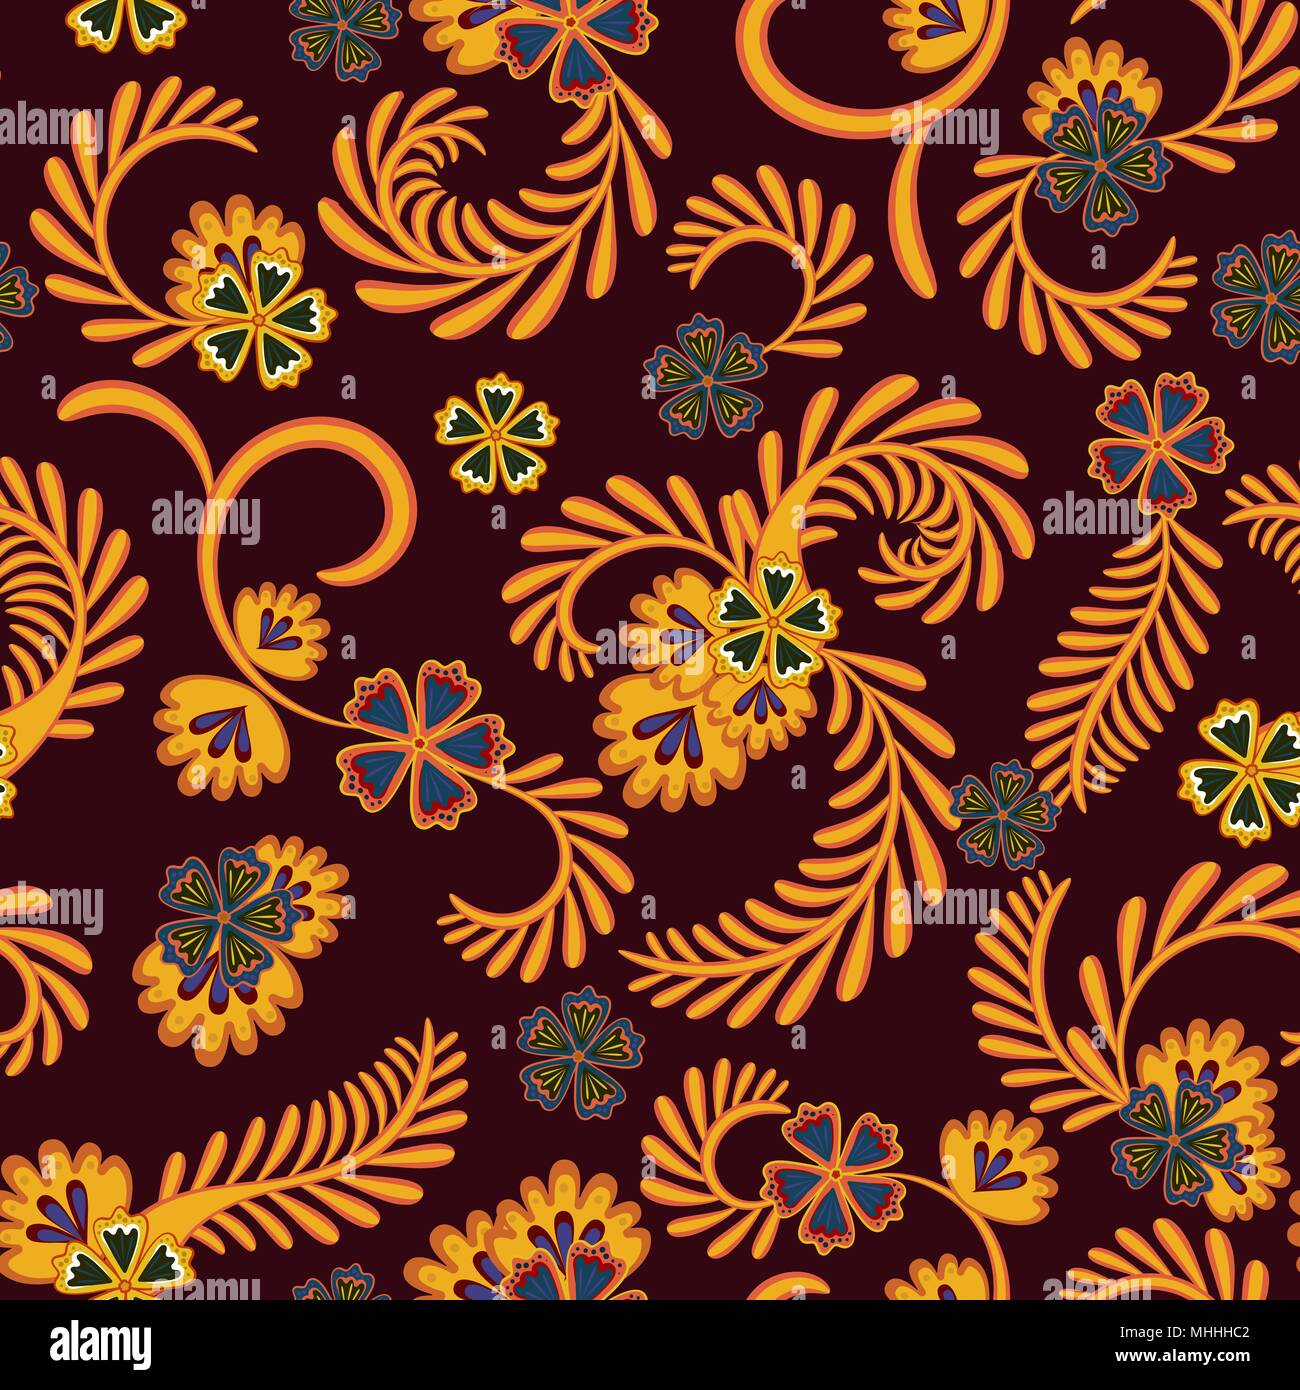 A simple floral pattern, convenient for editing and repainting